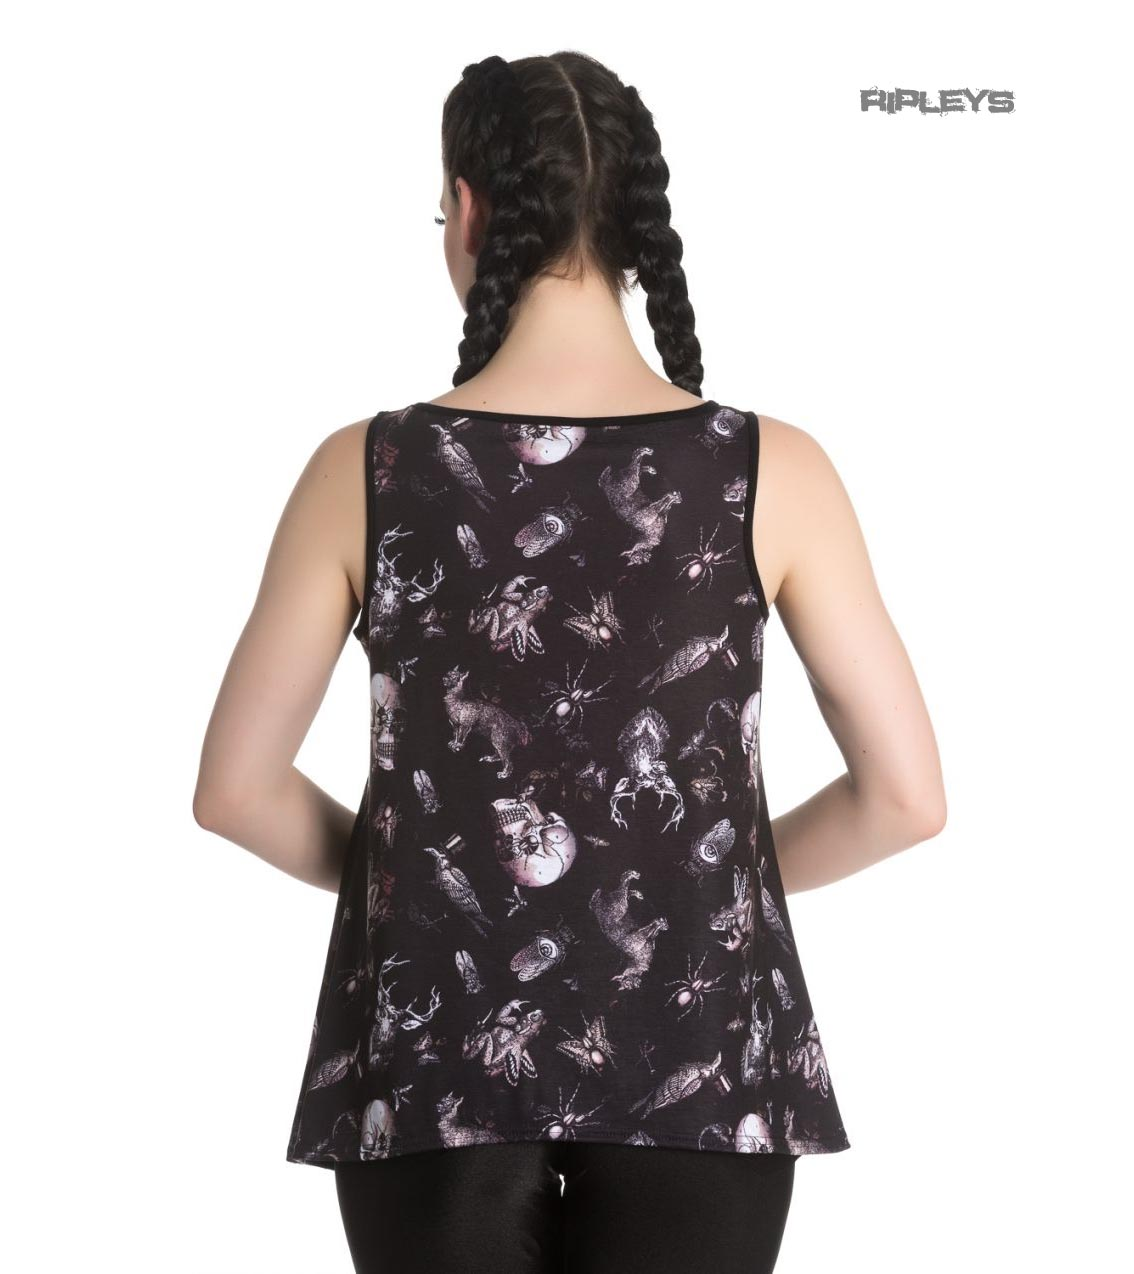 Hell-Bunny-Black-Vest-Cami-Top-Goth-Witch-DARWIN-Taxidermy-Skulls-All-Sizes thumbnail 12